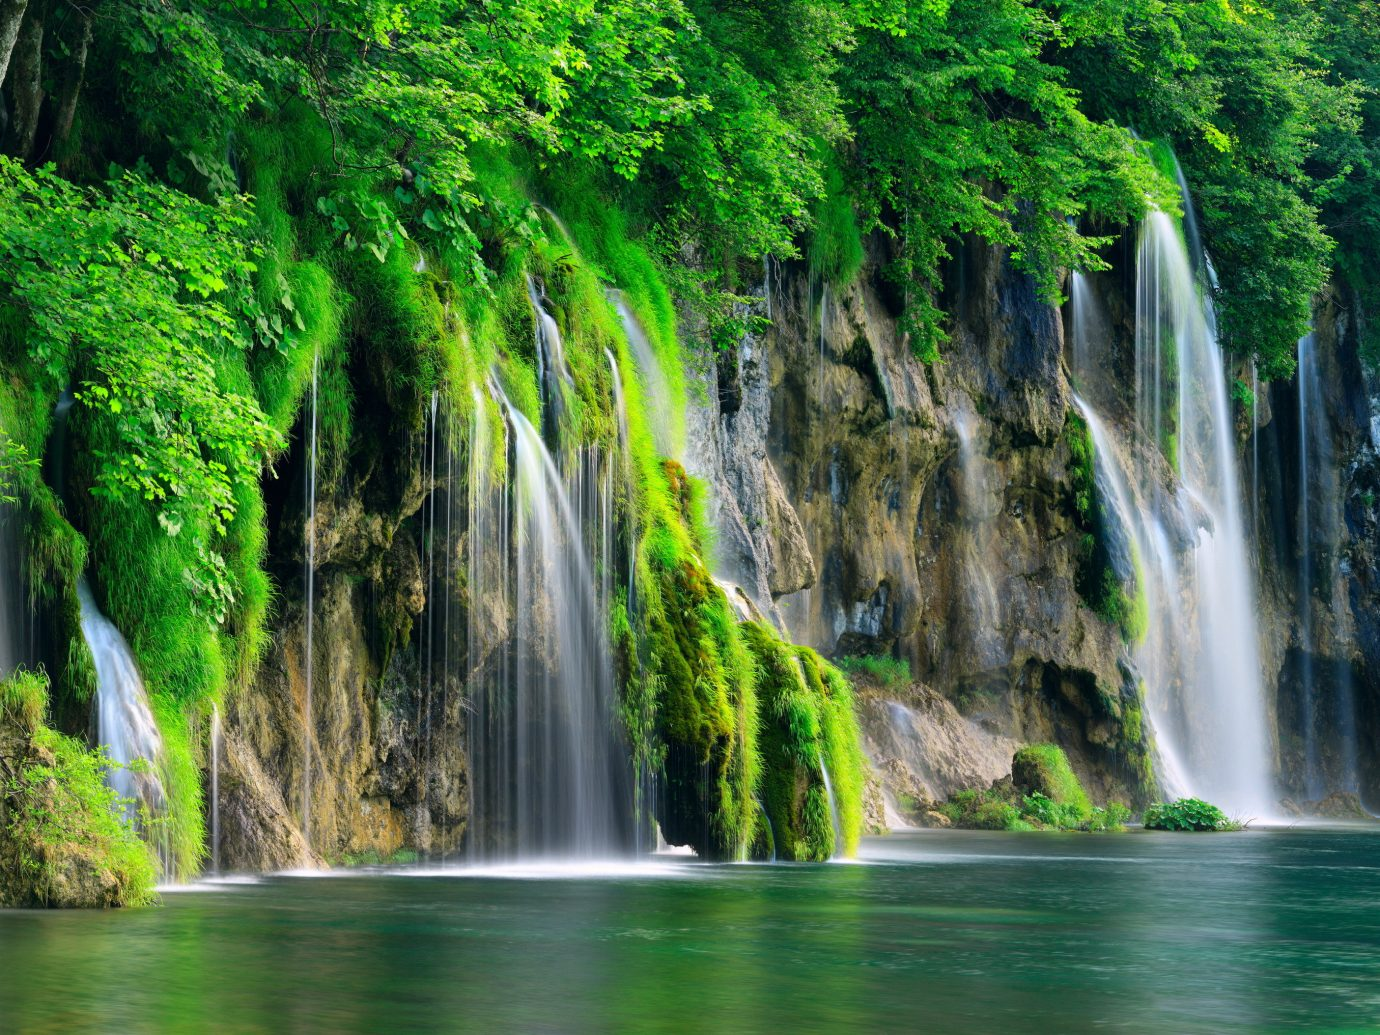 Offbeat Nature tree Waterfall outdoor water body of water green vegetation water feature watercourse Forest rainforest River wasserfall Jungle stream surrounded wooded